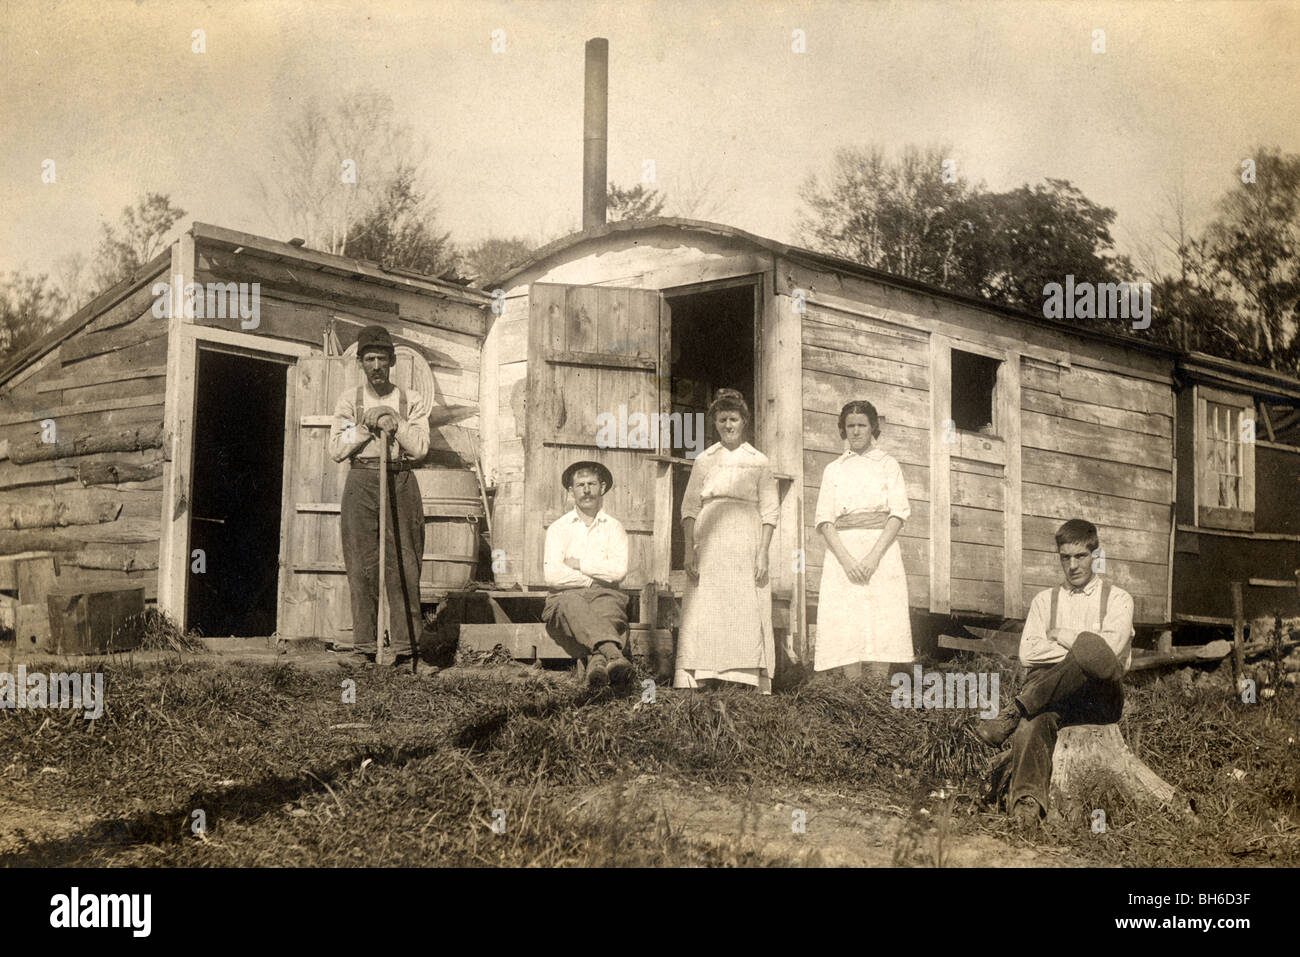 Family of Five People at Converted Cabin - Stock Image